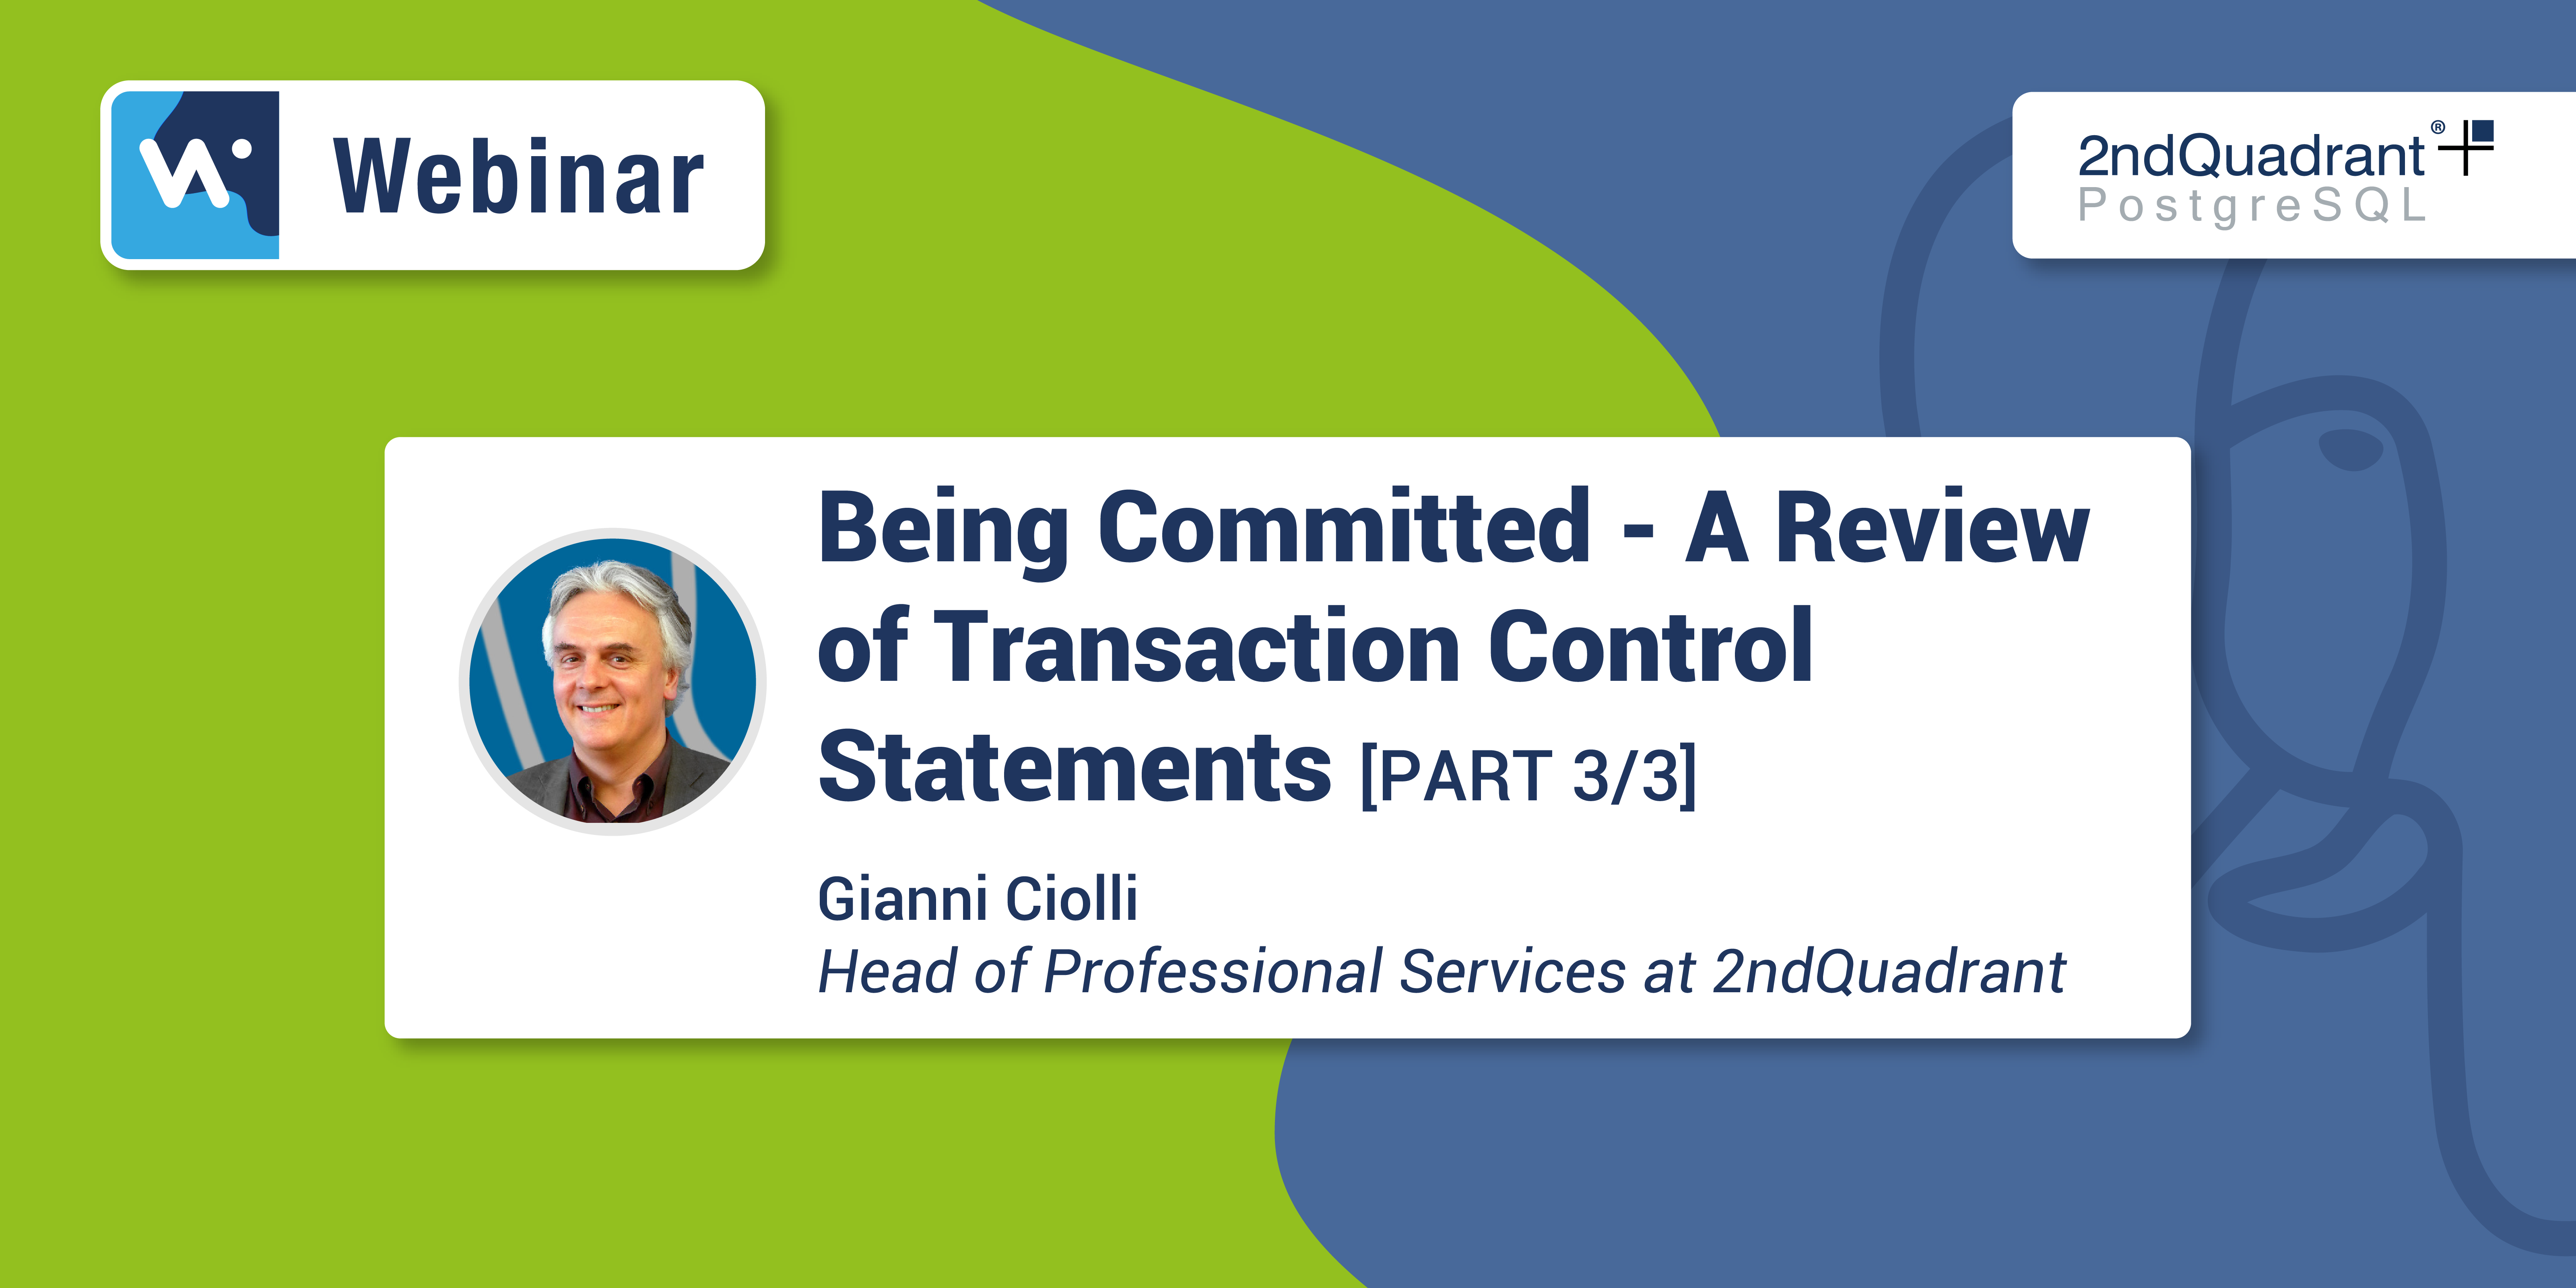 Webinar Preview A Review of Transaction Control Statements Part 3 by Gianni Ciolli